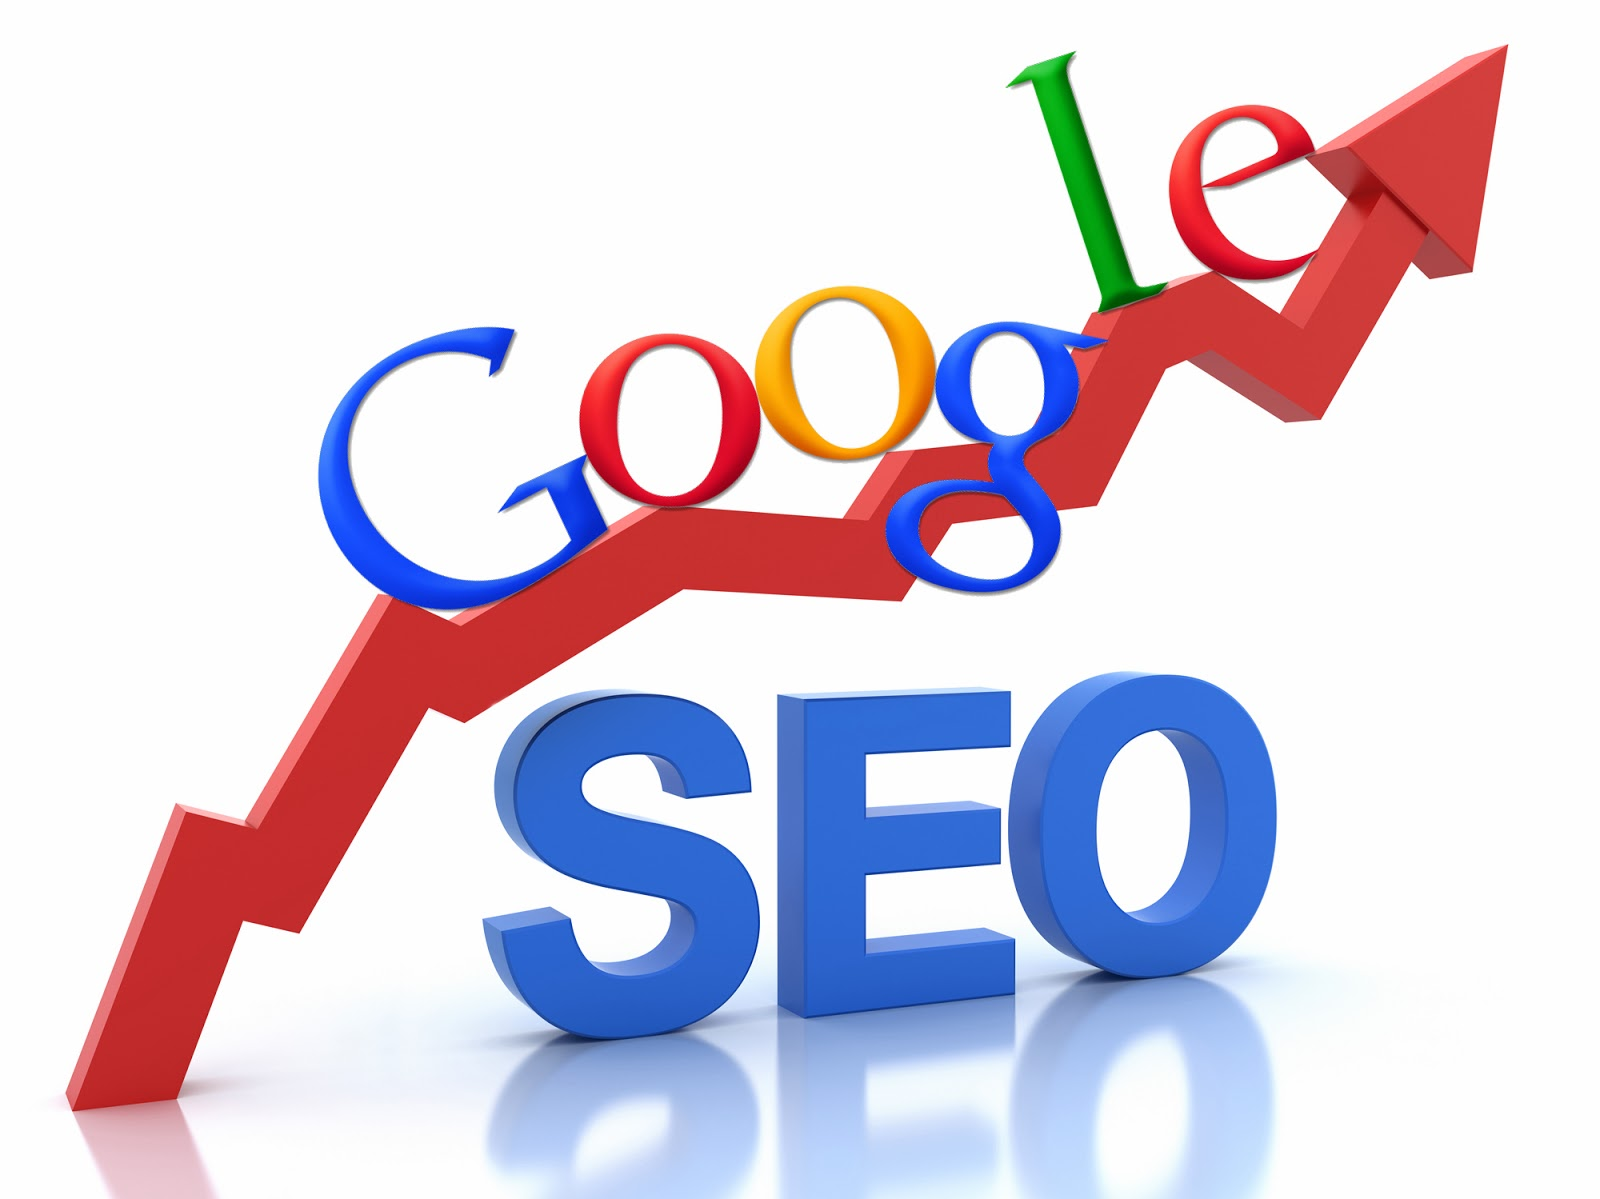 SEO, seo tips, search engine optimization, keywords, website, technology, internet,